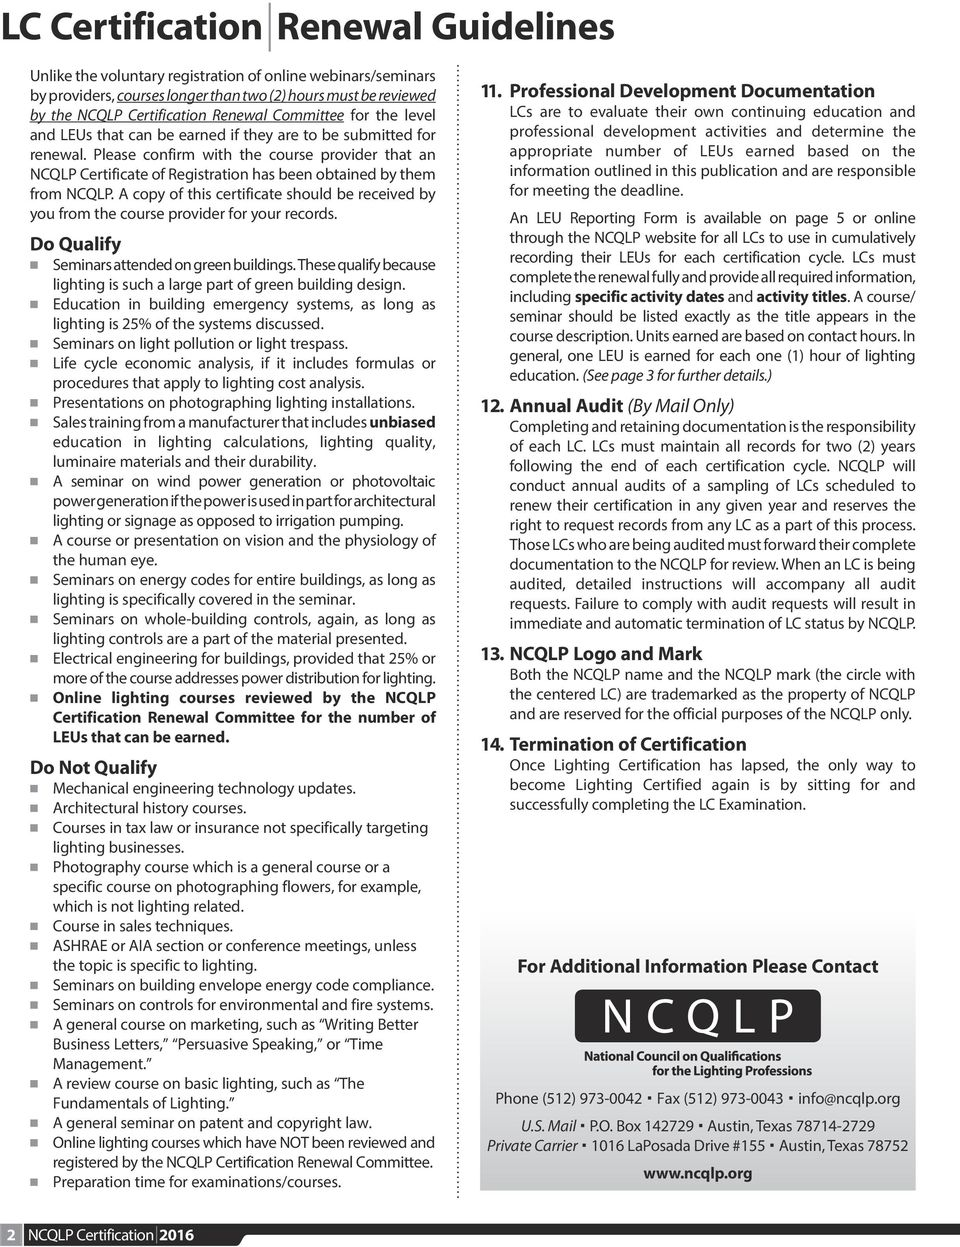 Please confirm with the course provider that an NCQLP Certificate of  Registration has been obtained by